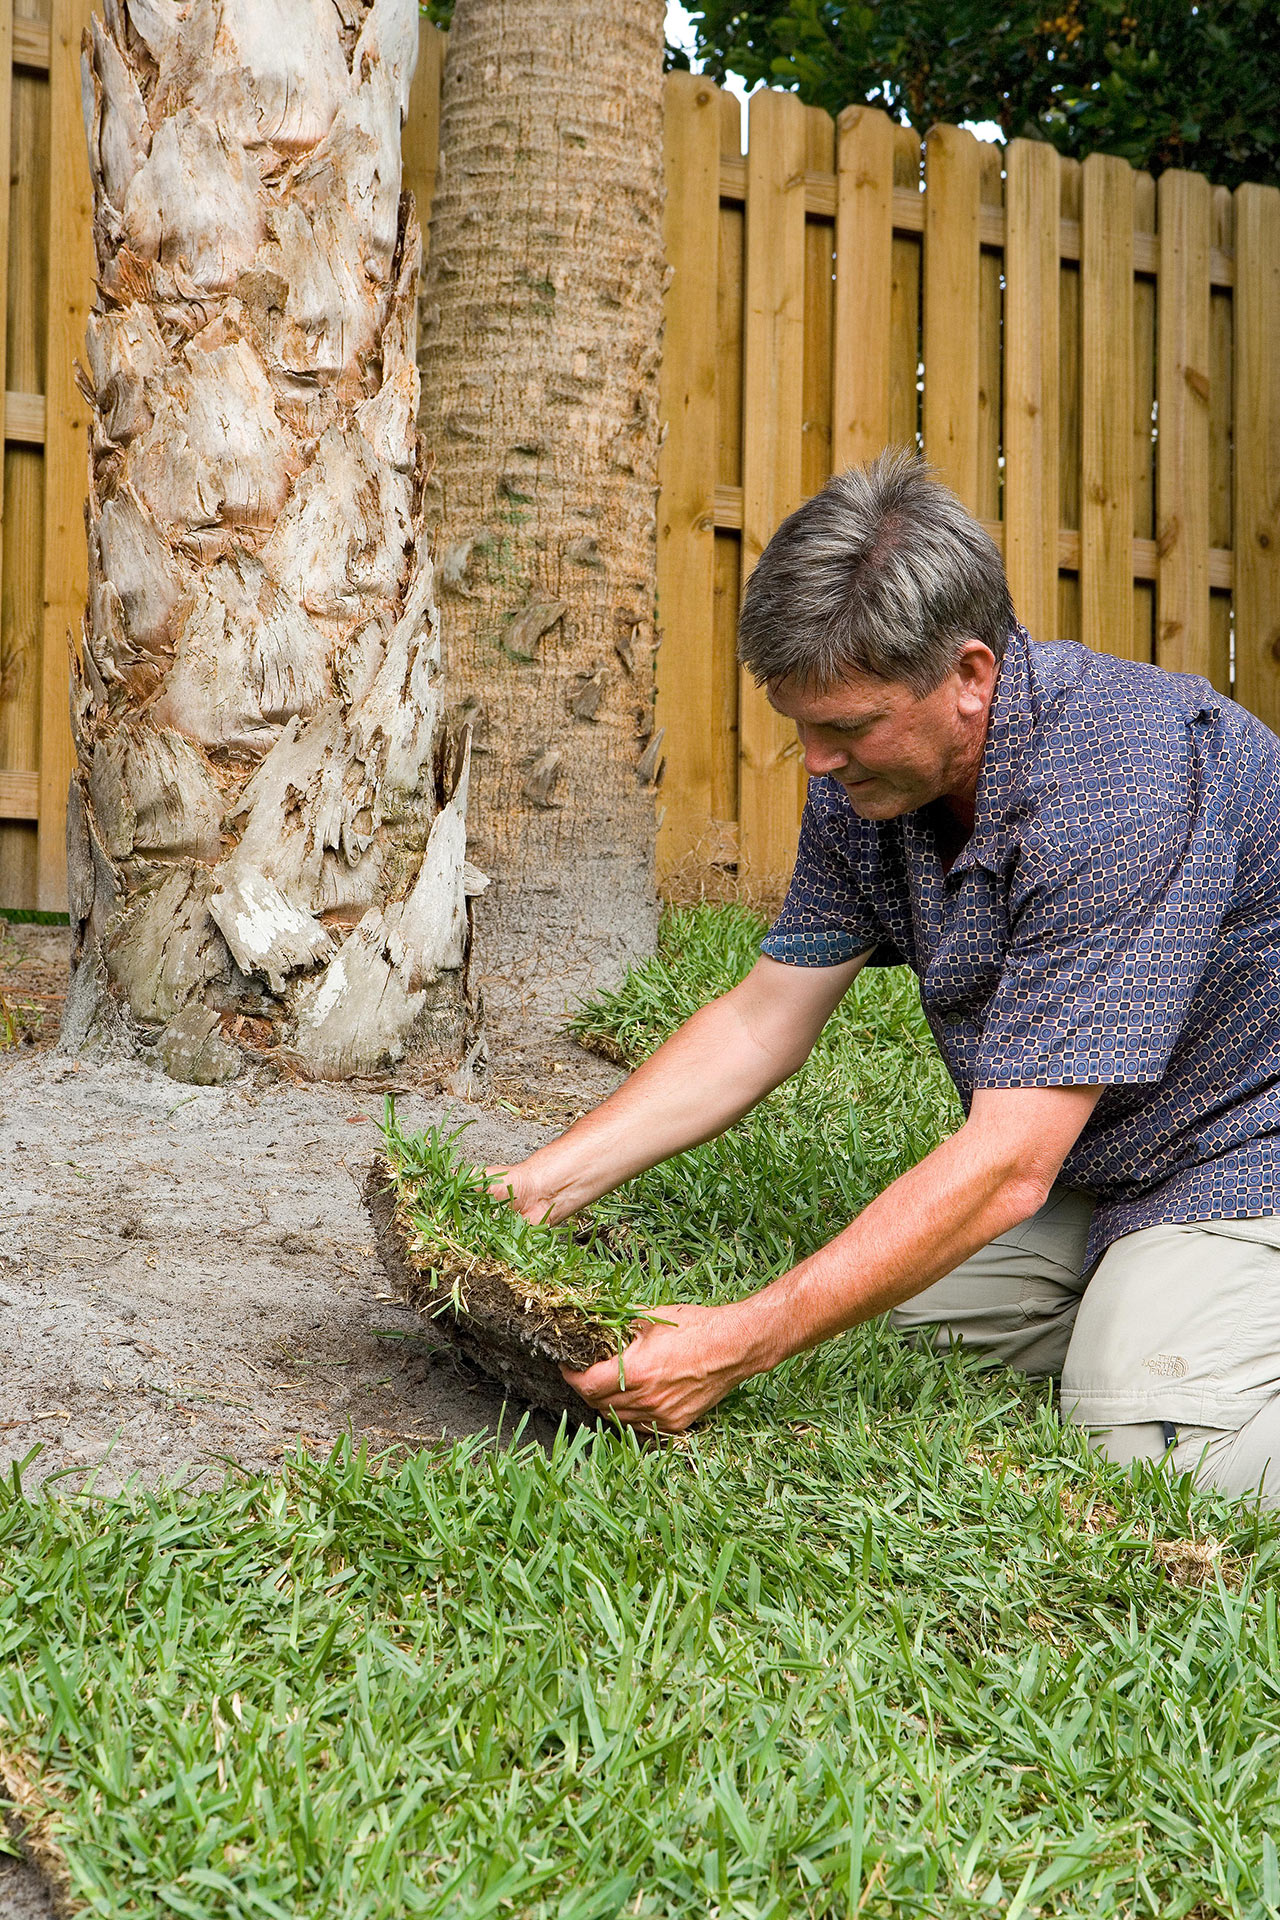 man placing sod patches near trees